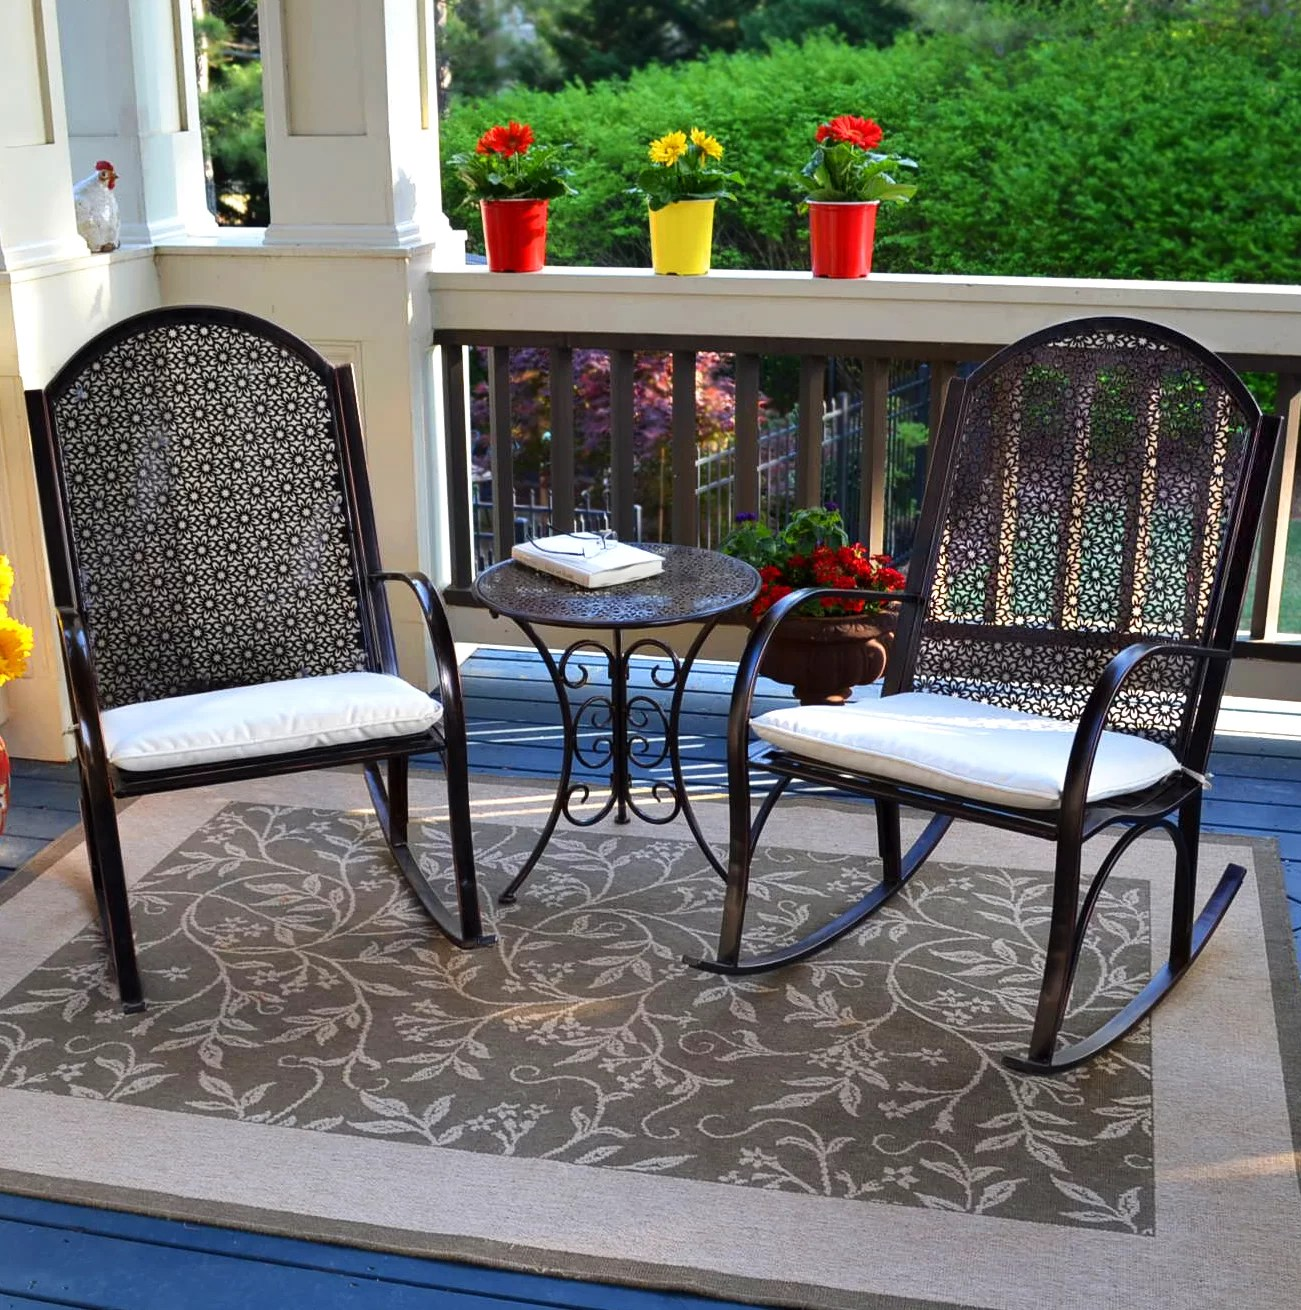 Outdoor Rocking Chair Set Wallace Rocking Chair Set